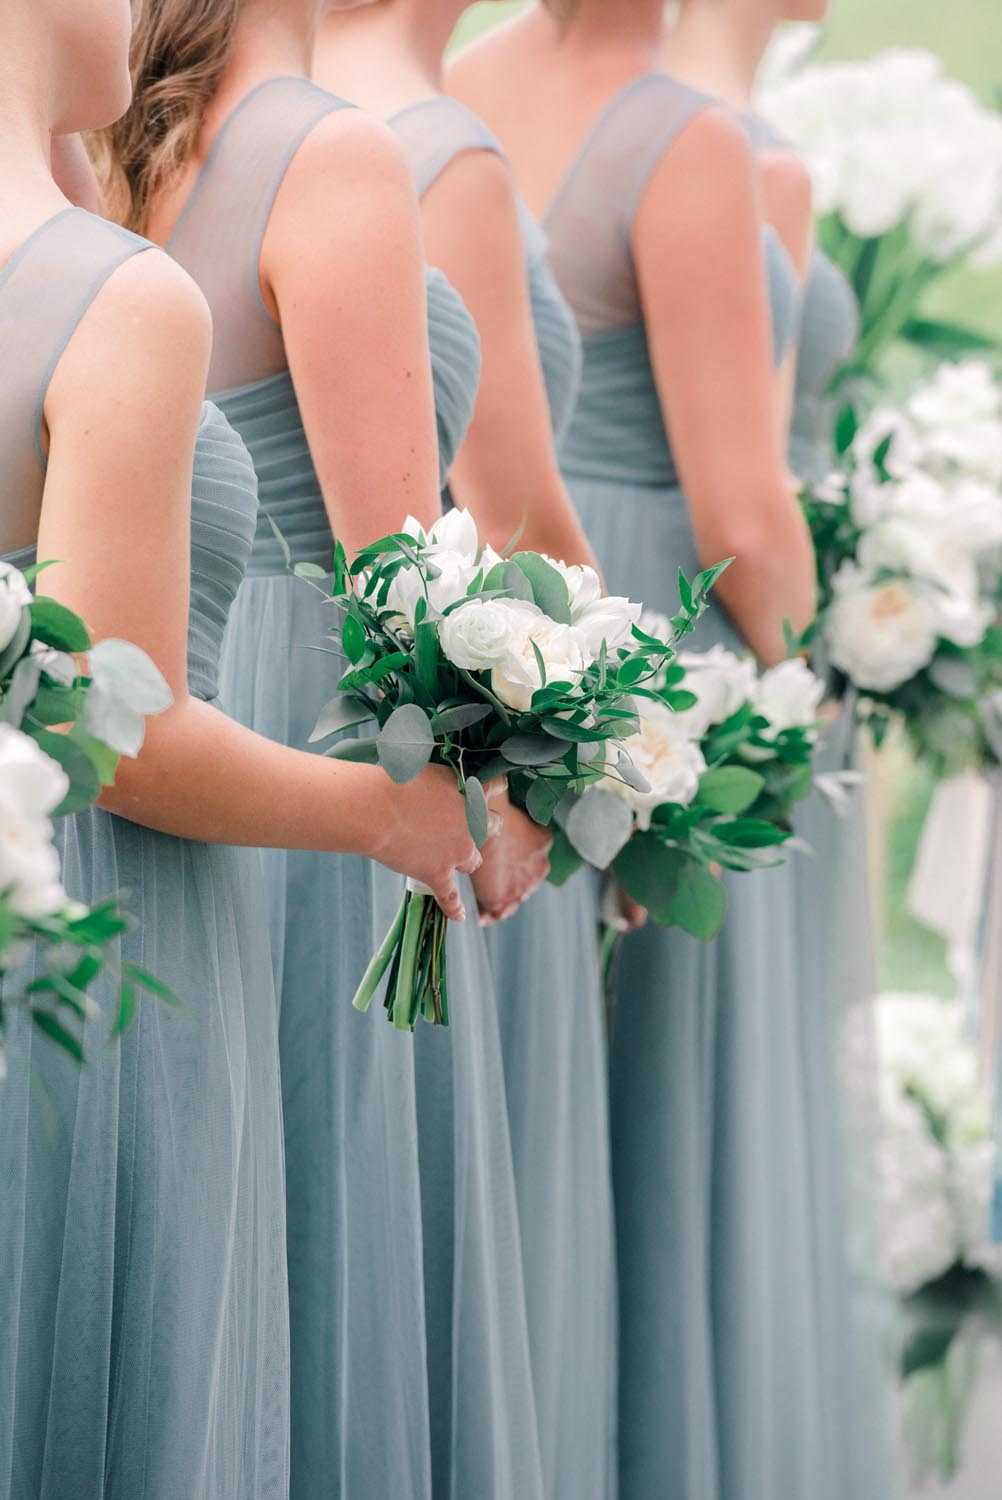 Sage green, blue, and cream wedding design in the low country in South Carolina. Wedding planning and design by A Charleston Bride.